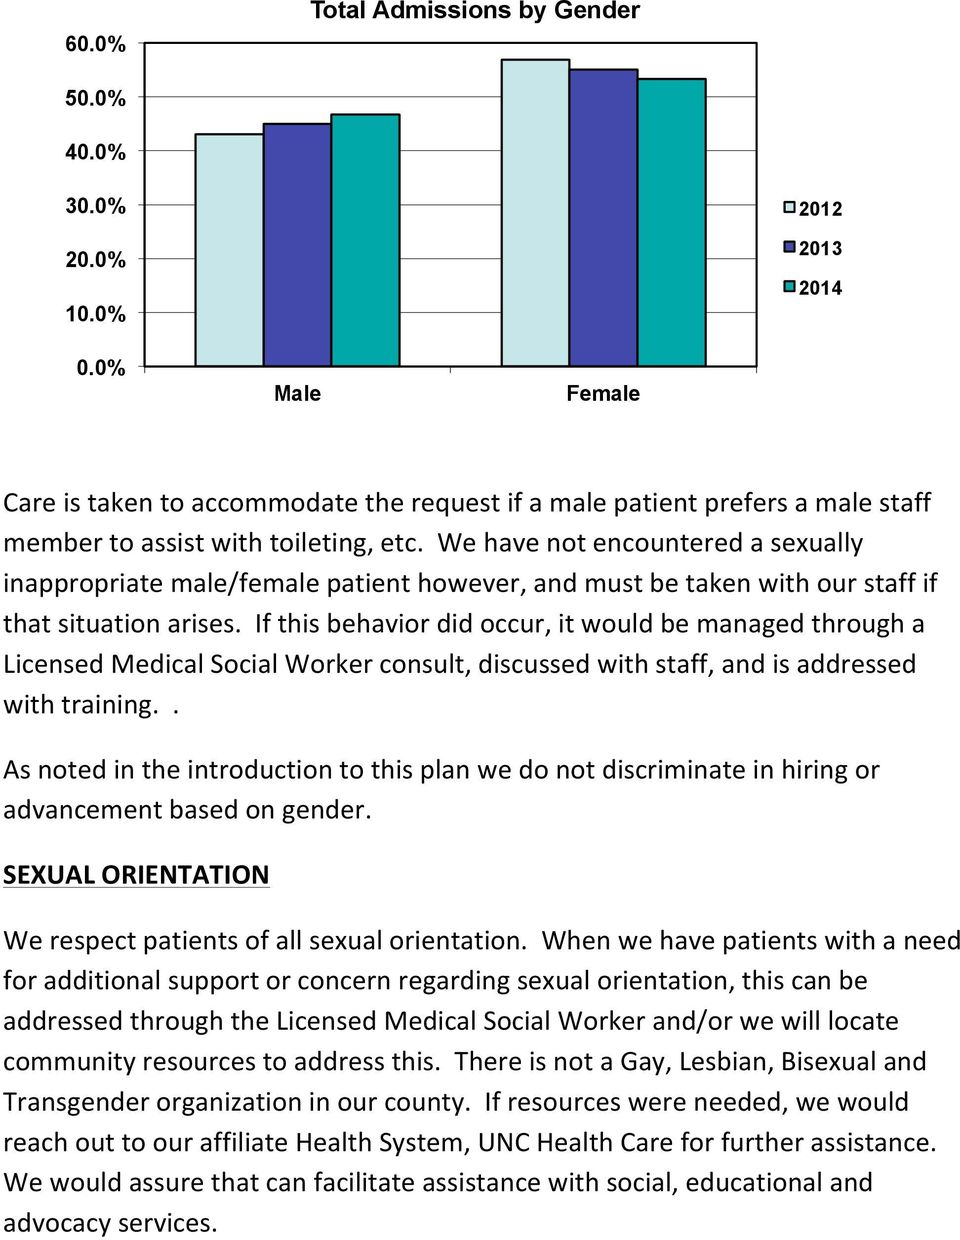 We have not encountered a sexually inappropriate male/female patient however, and must be taken with our staff if that situation arises.